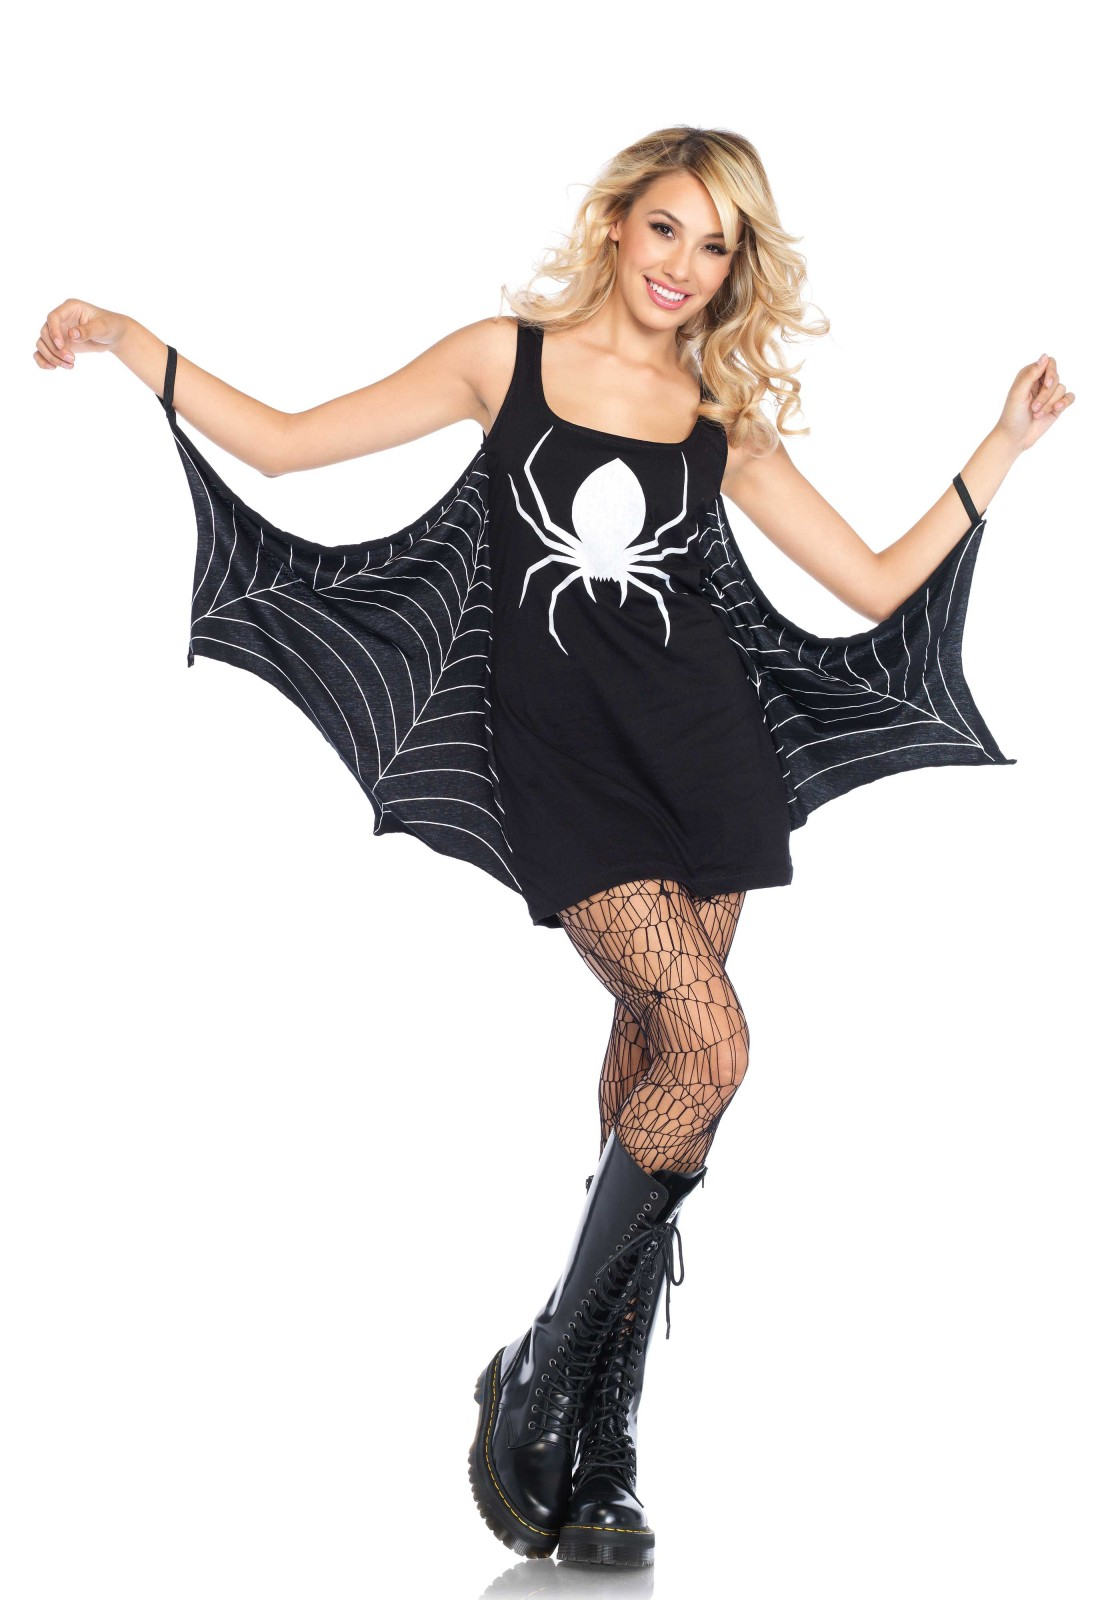 Jersey spiderweb tunic dress with elastic wrist bands.